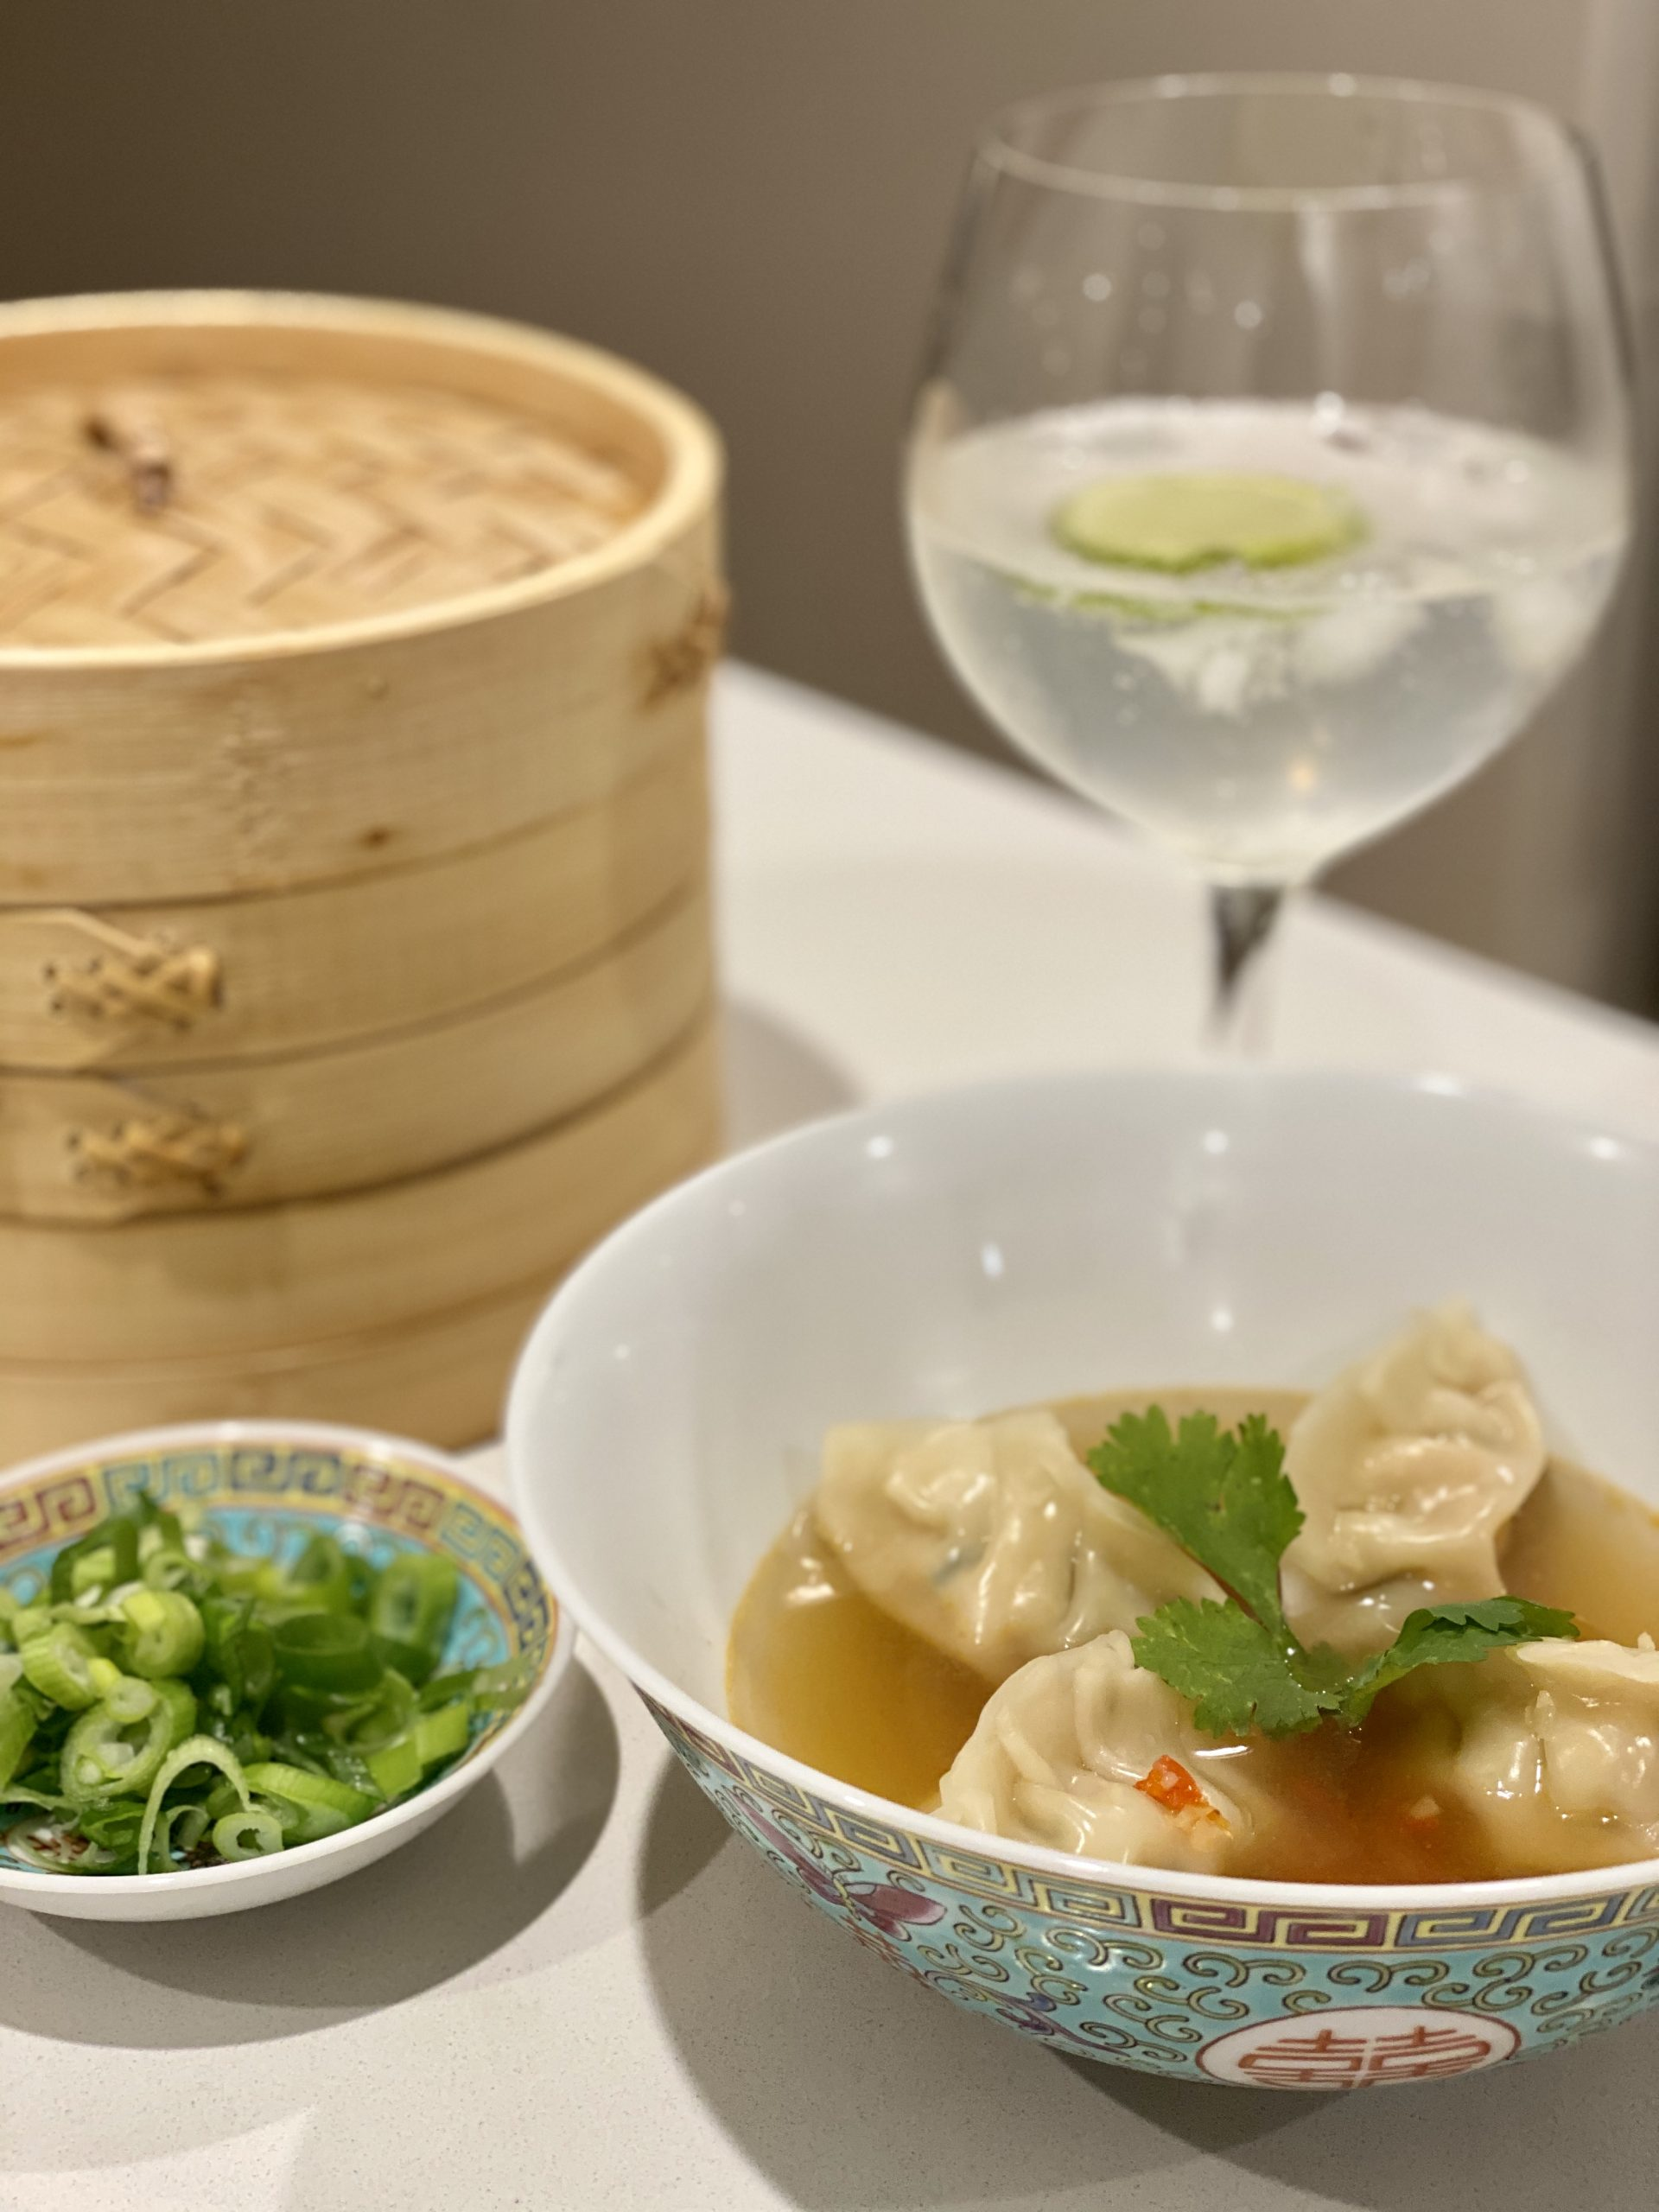 Food Tourism - Donna Hay Dumplings - Giddy Guest